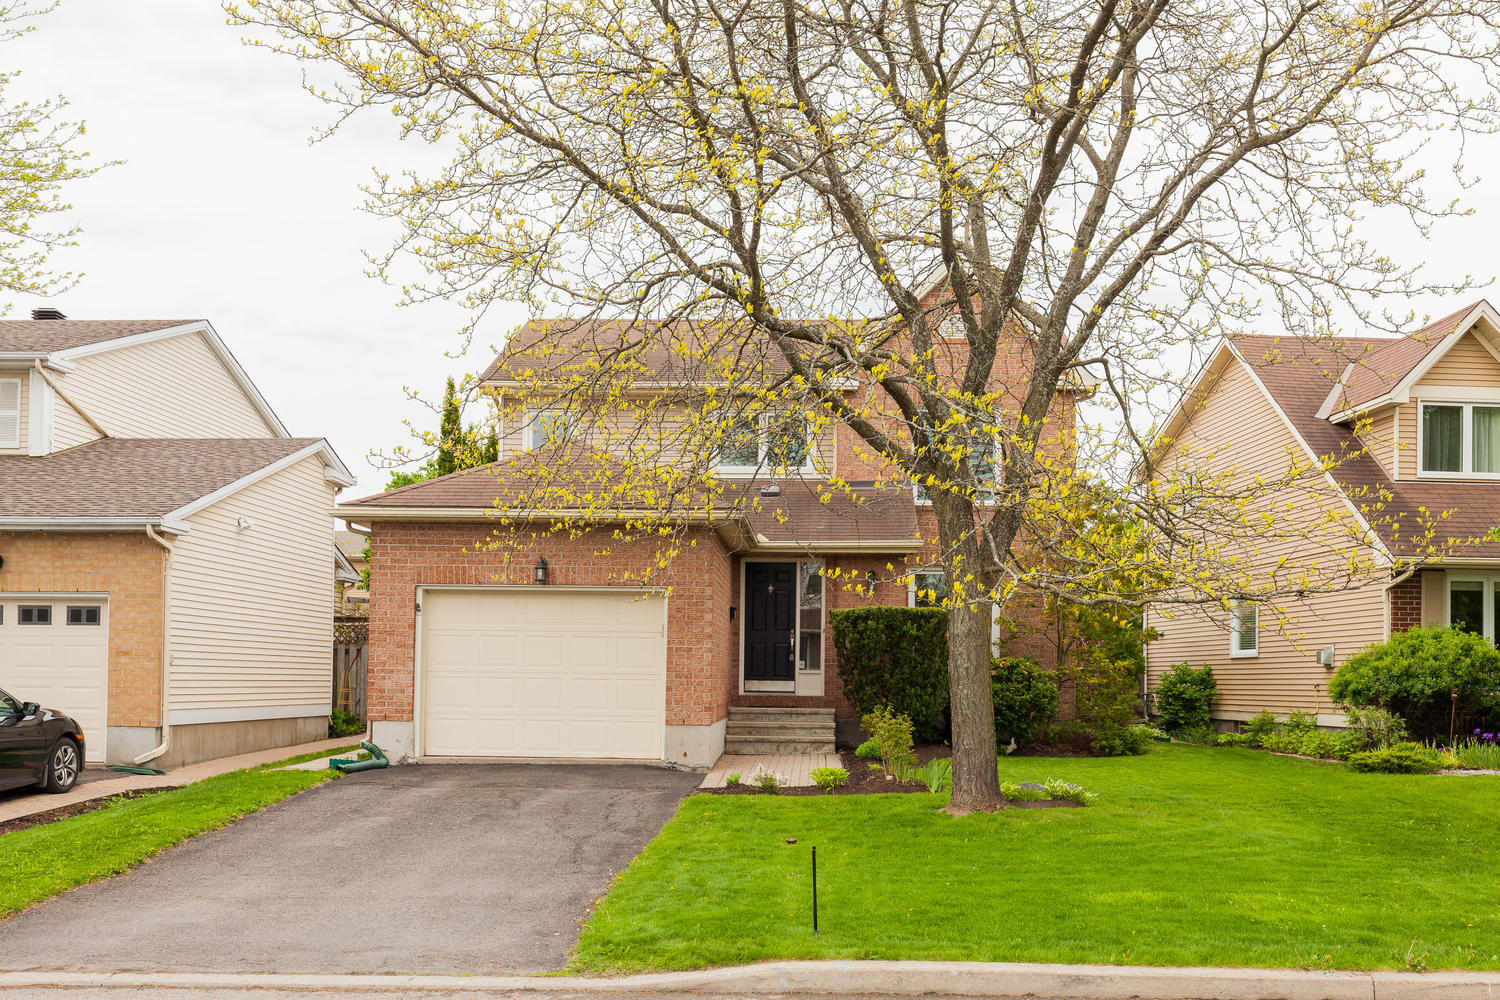 A GORGEOUS, Updated, 4 Bedroom, 4 Bathroom single family home, located on a quiet street in a family friendly neighborhood.